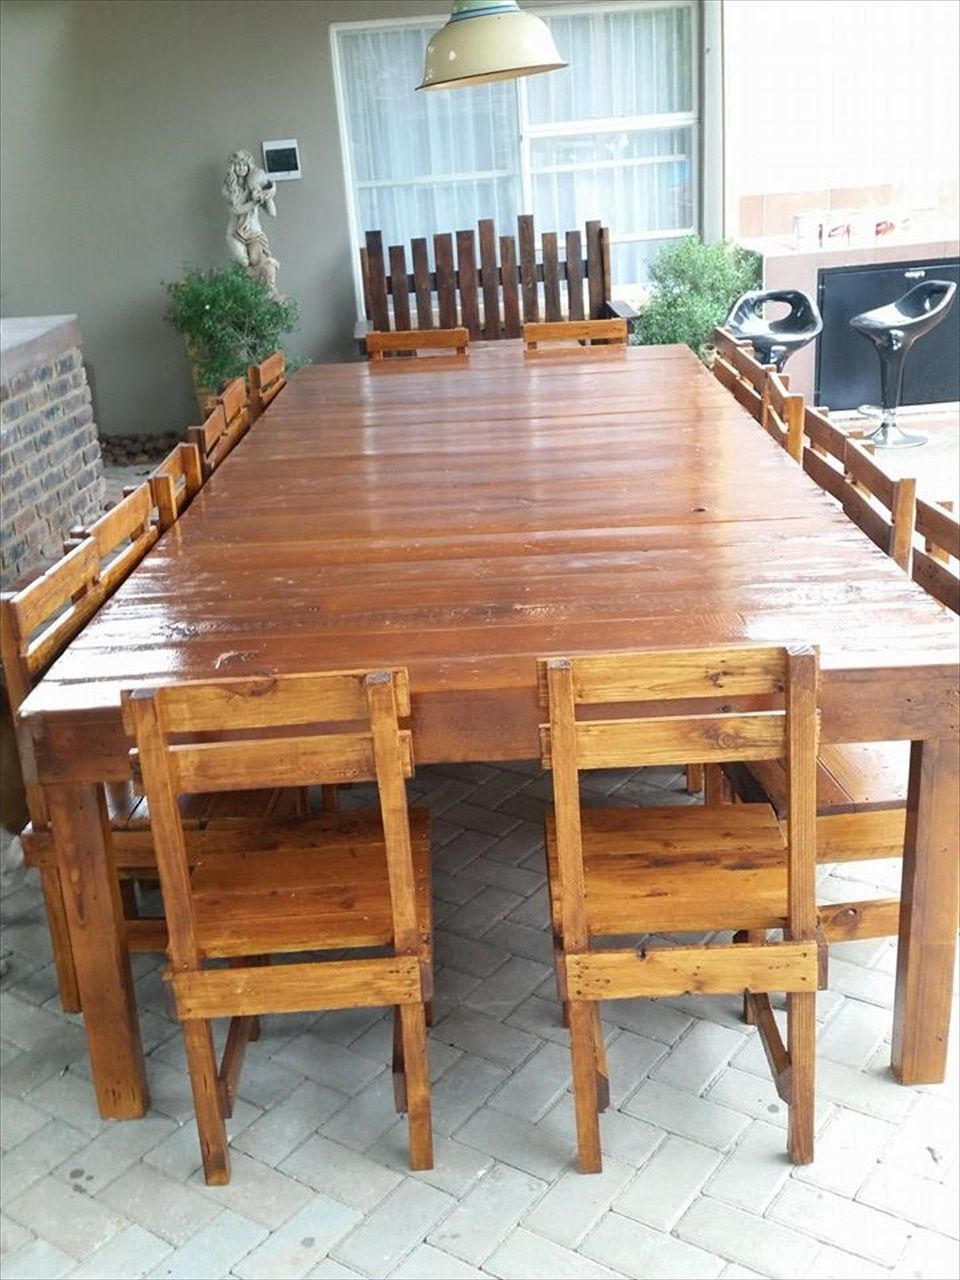 DIY Sixteen Seater Pallet Dining Table Diy pallet